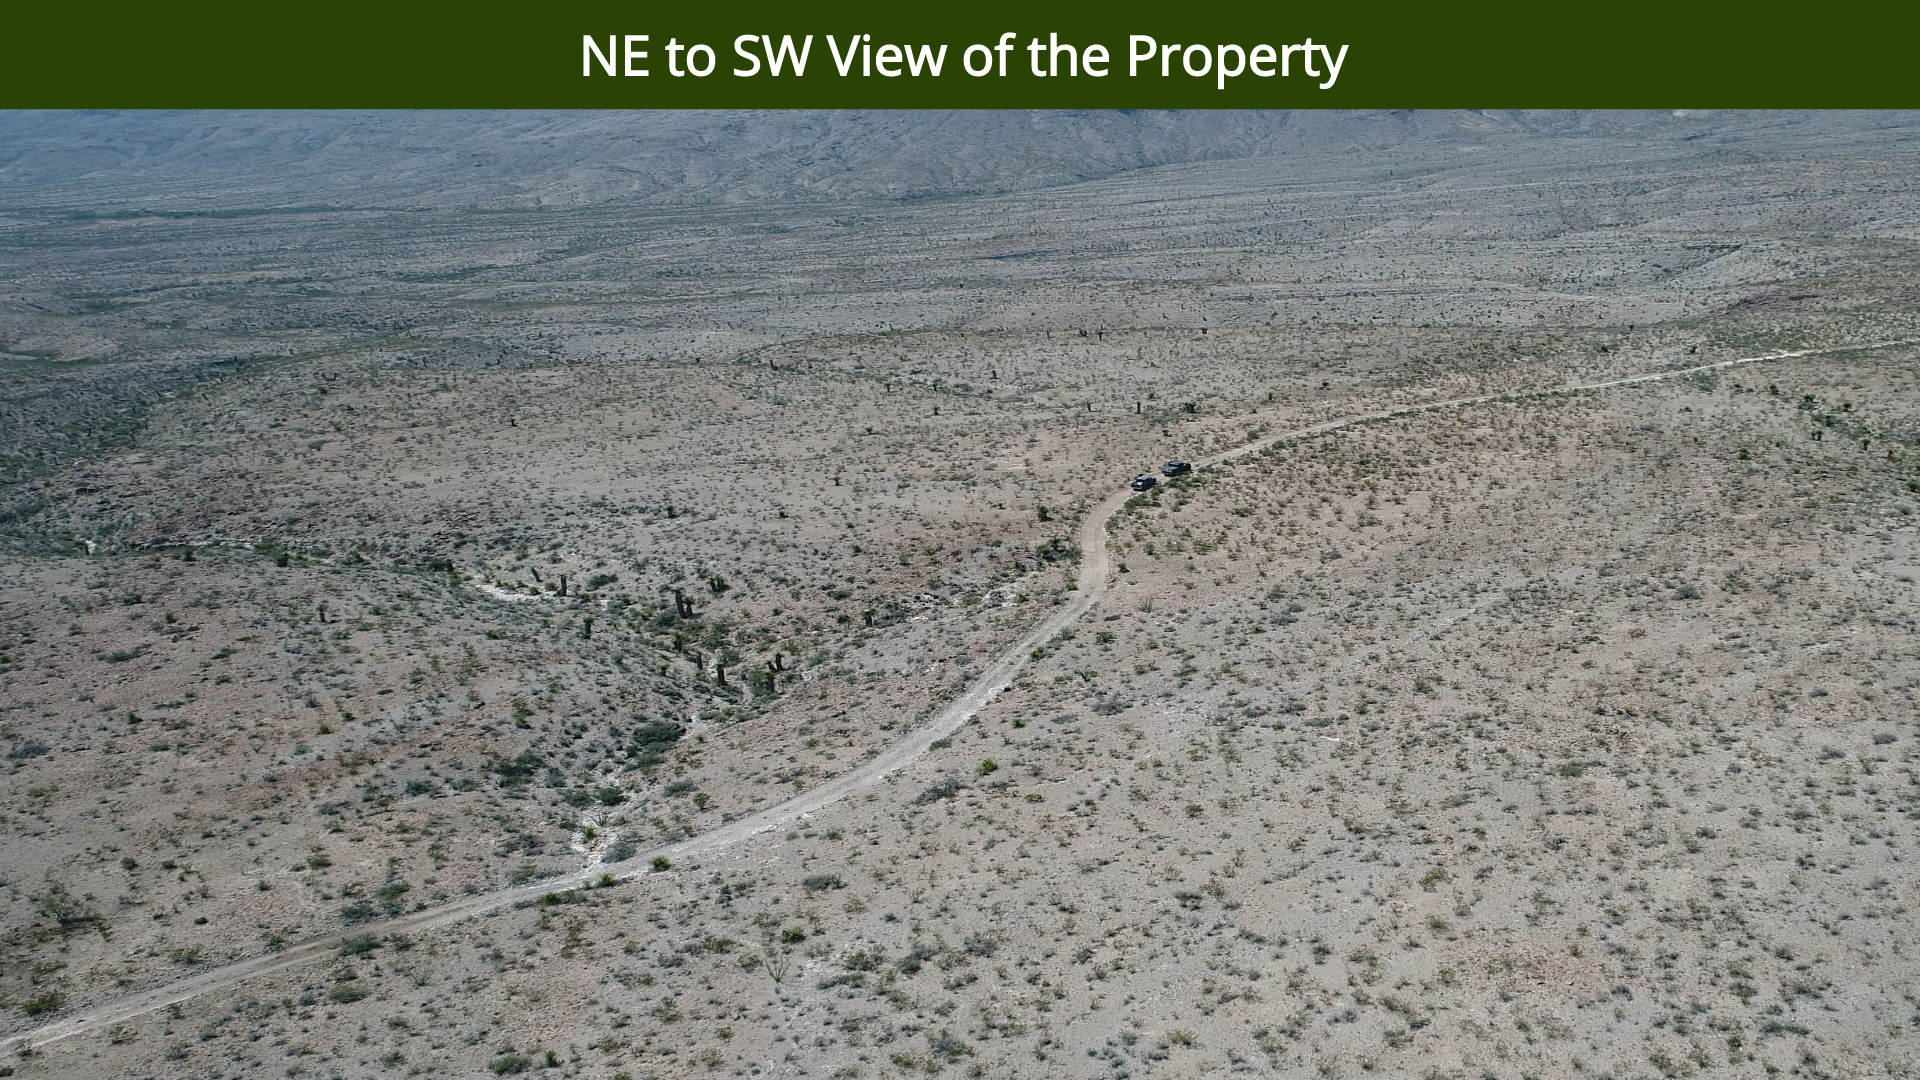 NE to SW View of the Property